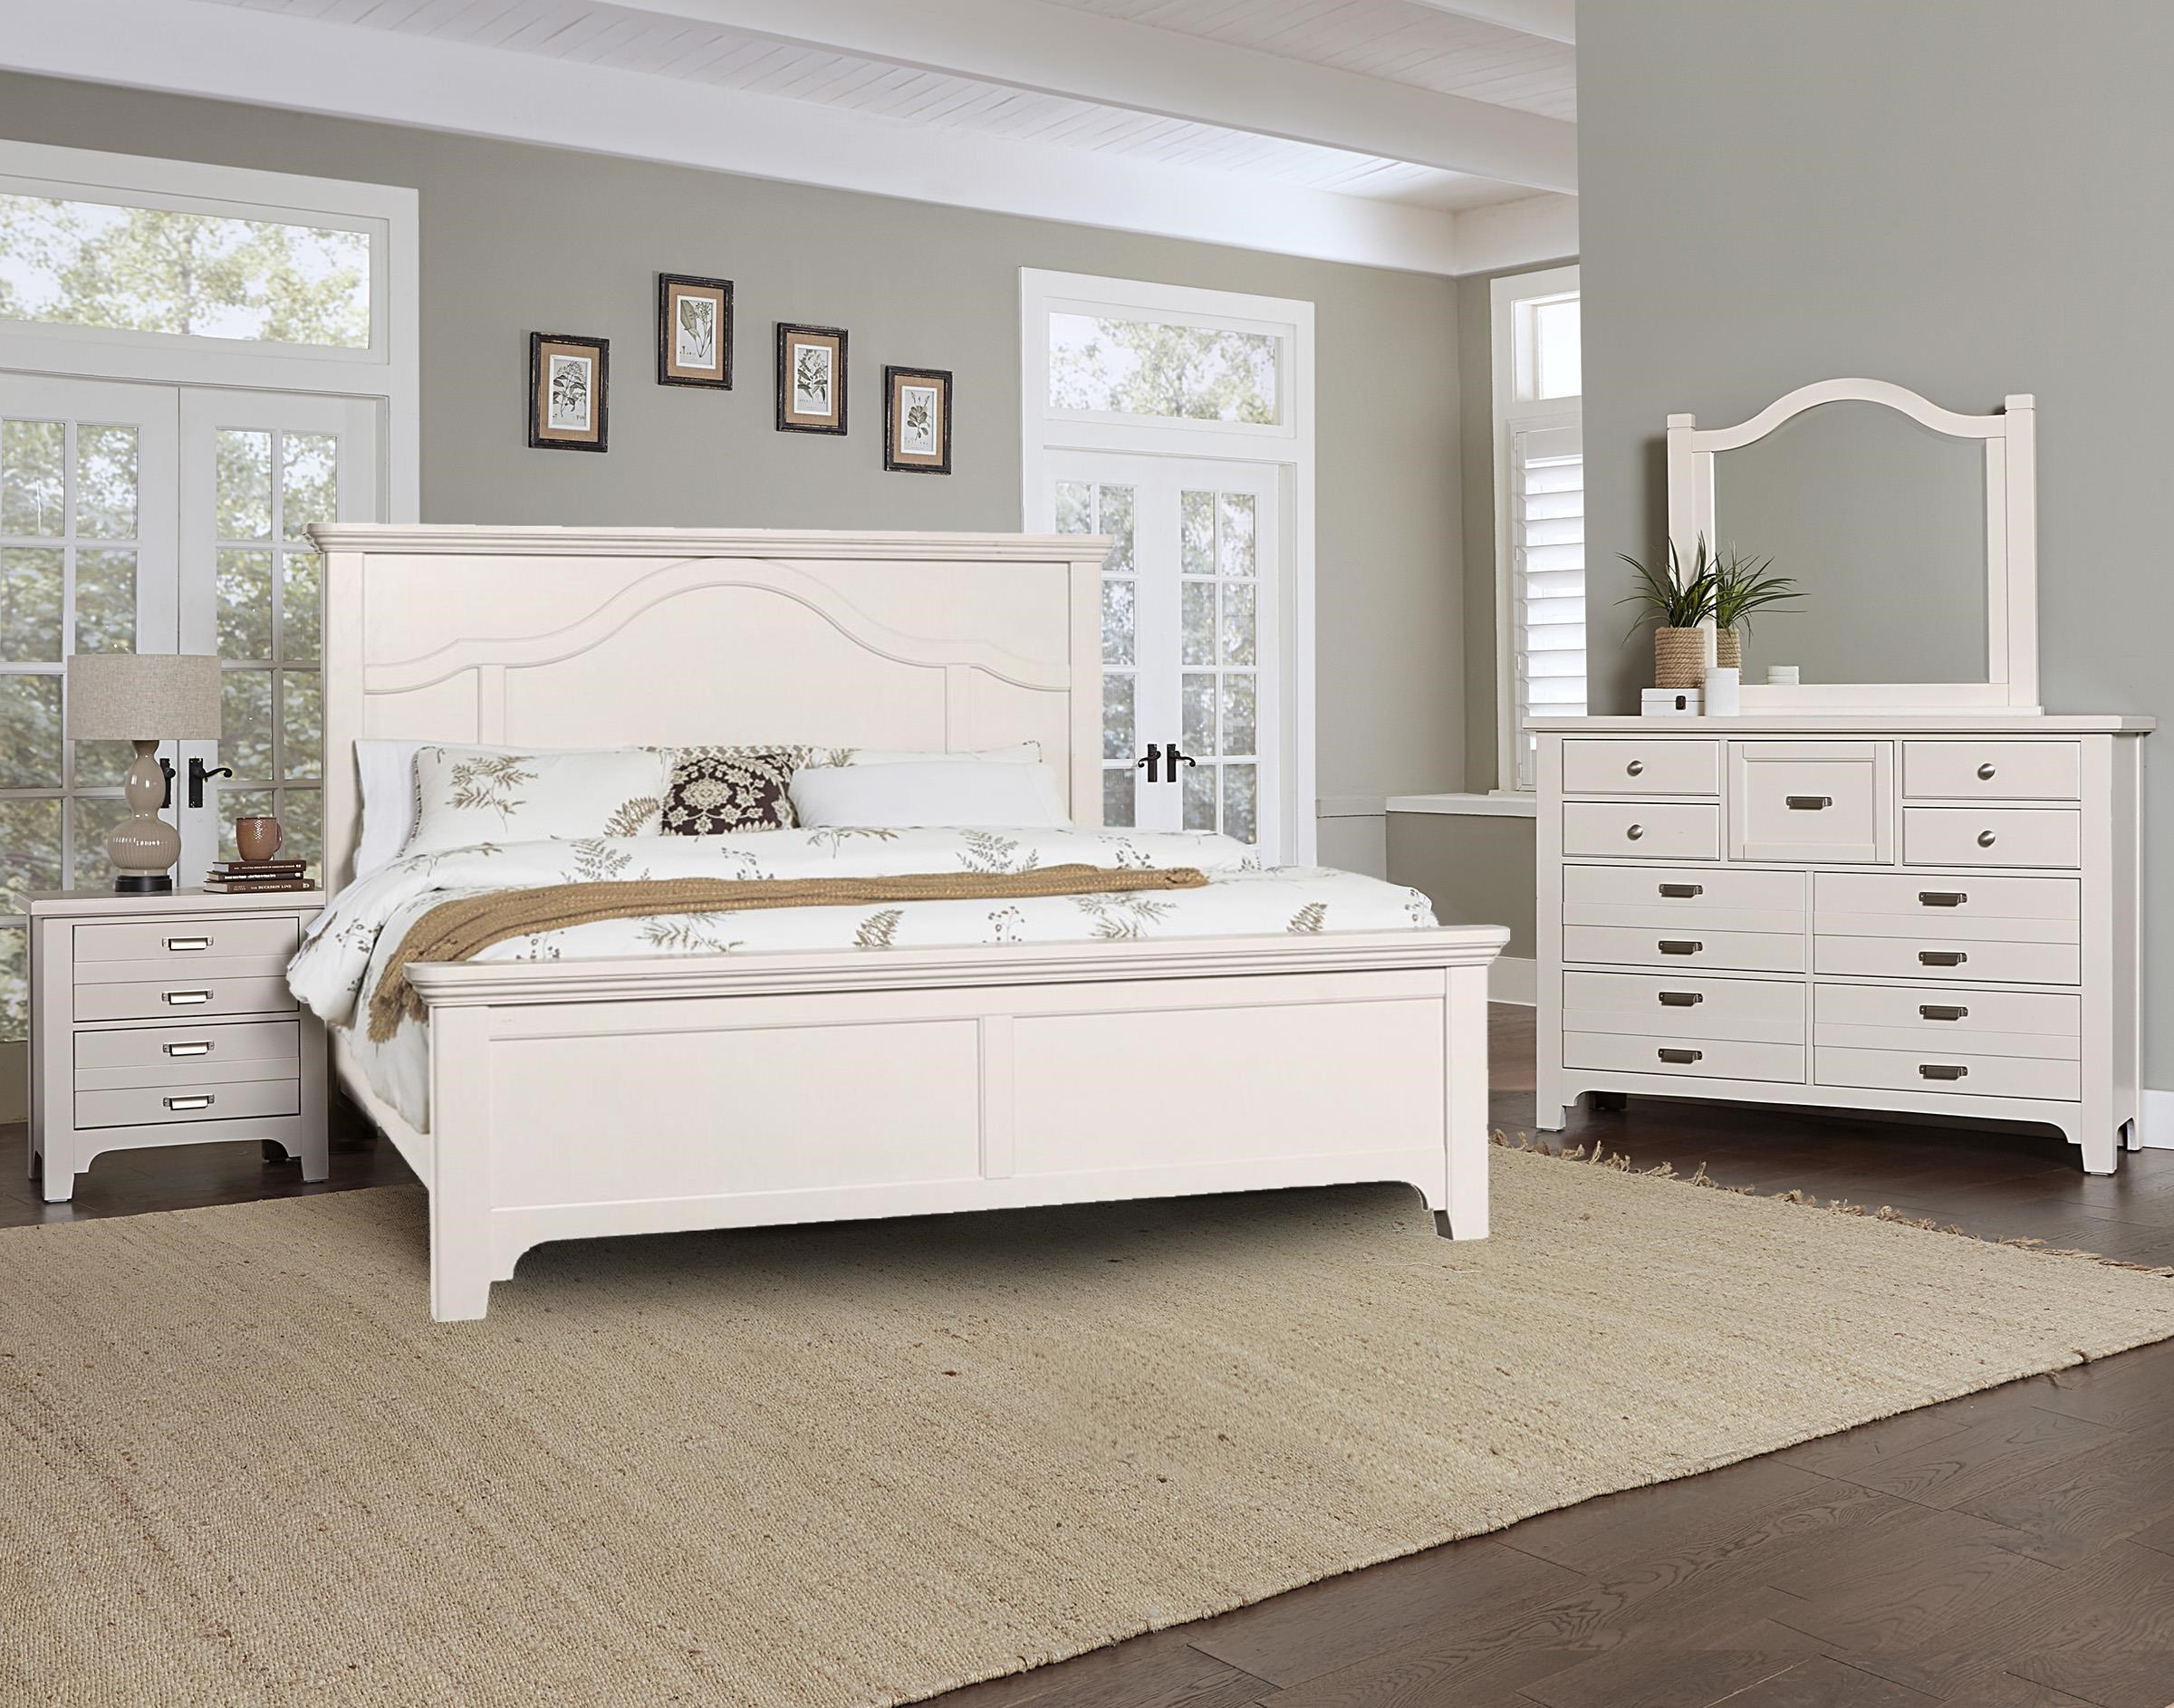 Bungalow 4-Piece Queen Bedroom by Laurel Mercantile Co. at Ruby Gordon Home